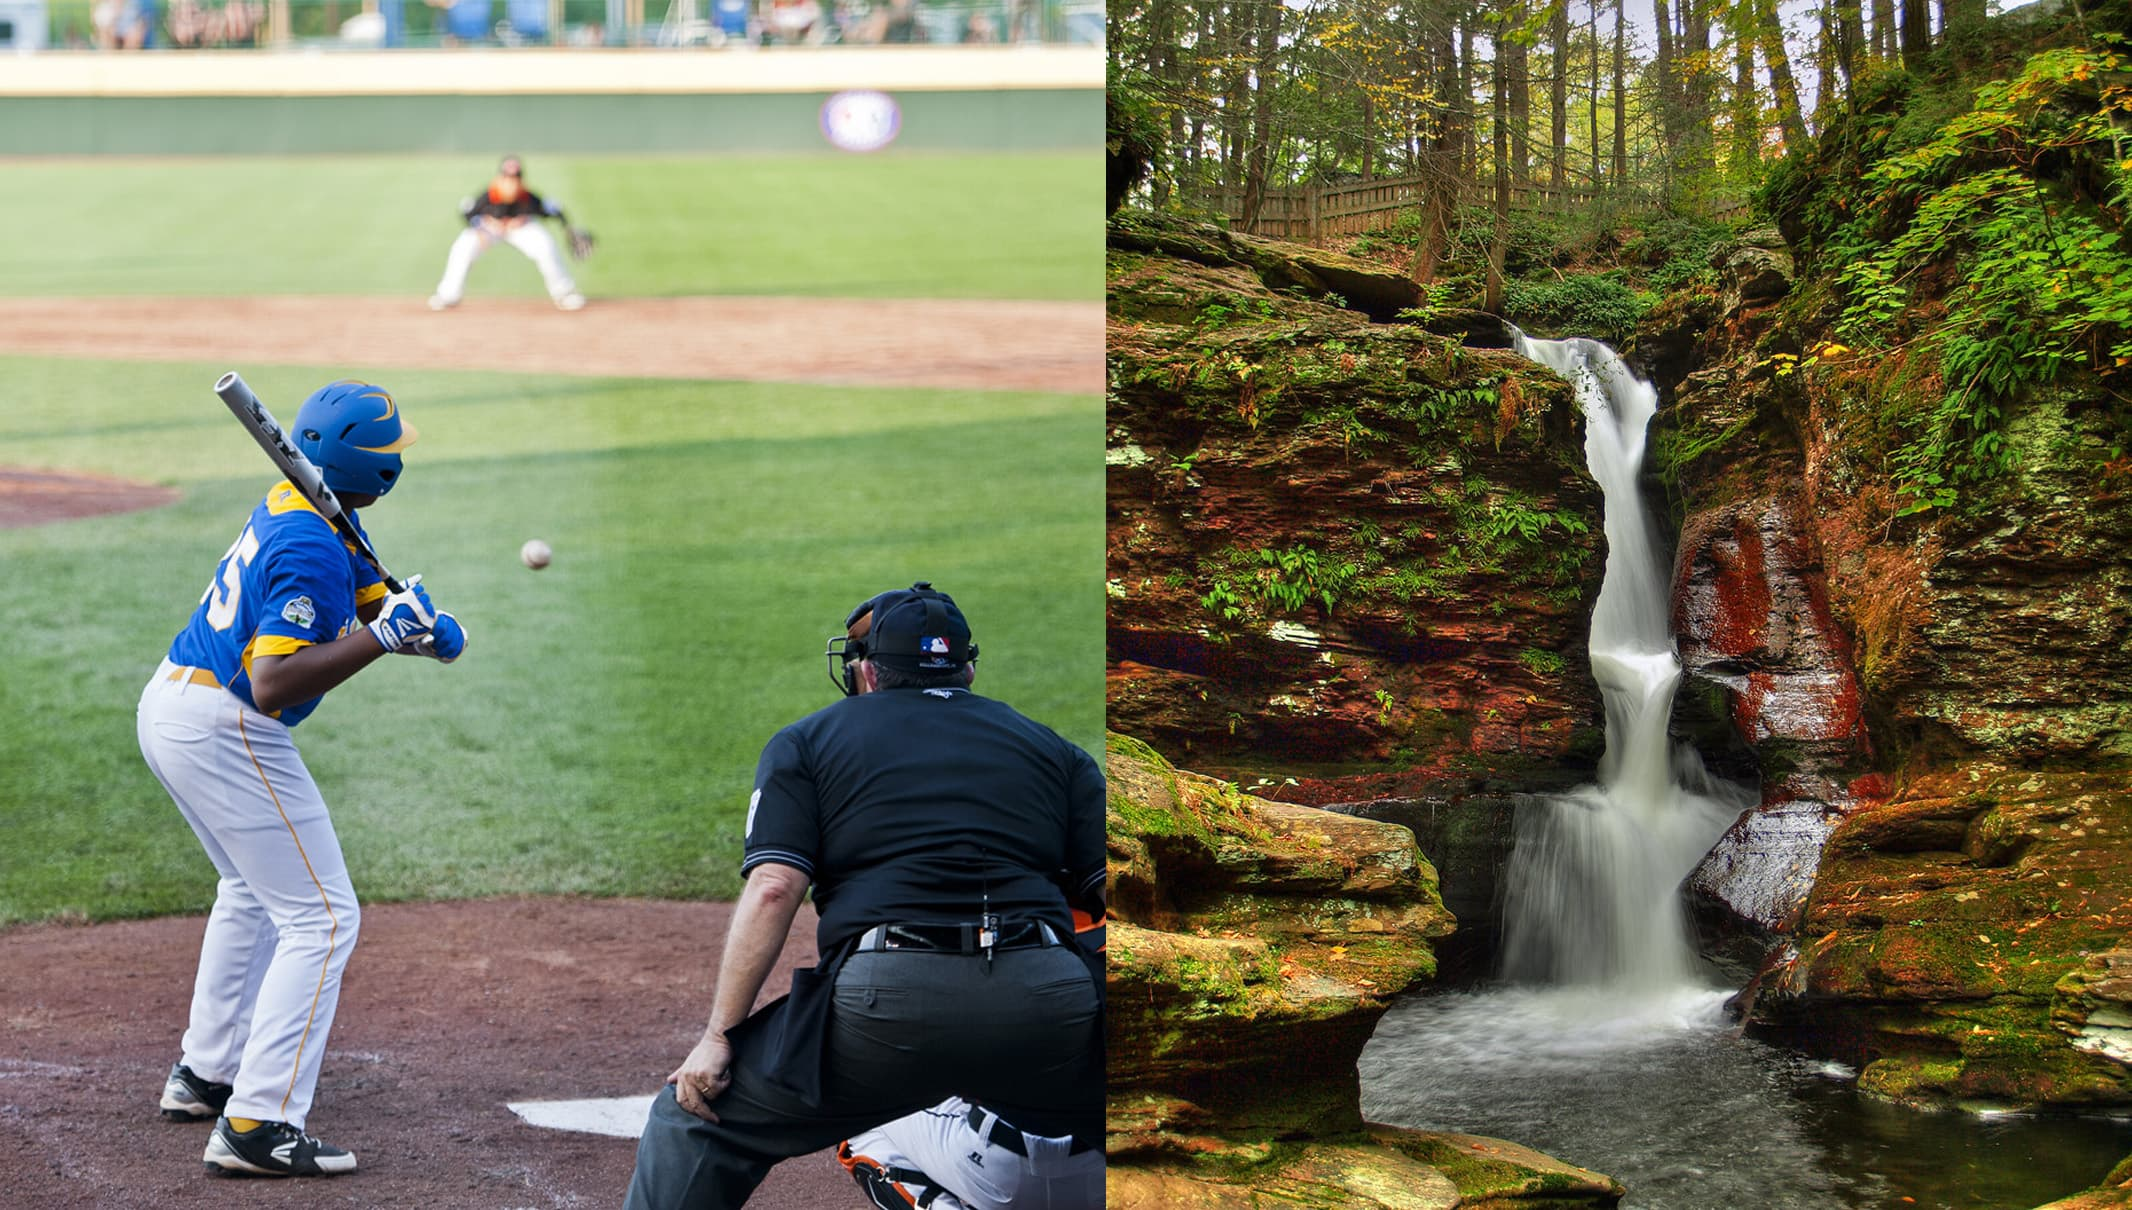 Left: boy swinging baseball bat. Right: waterfall with green foliage around